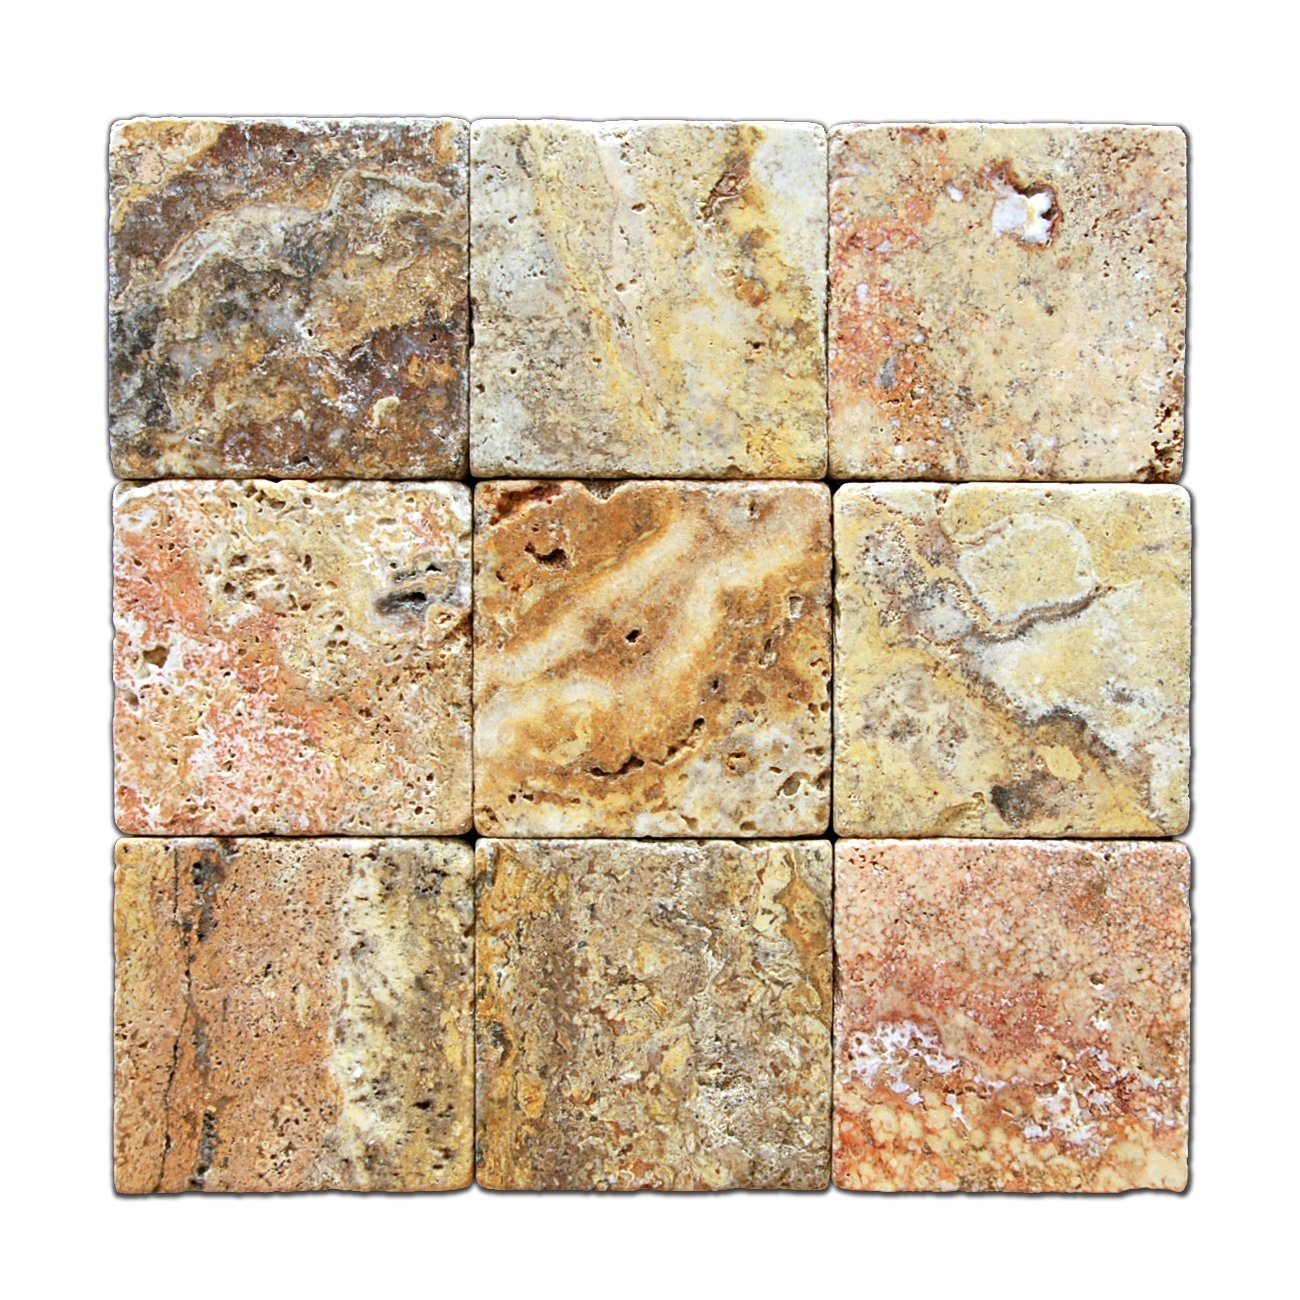 Scabos Travertine 4 X 4 Tile, Tumbled - Box of 5 sq. ft.